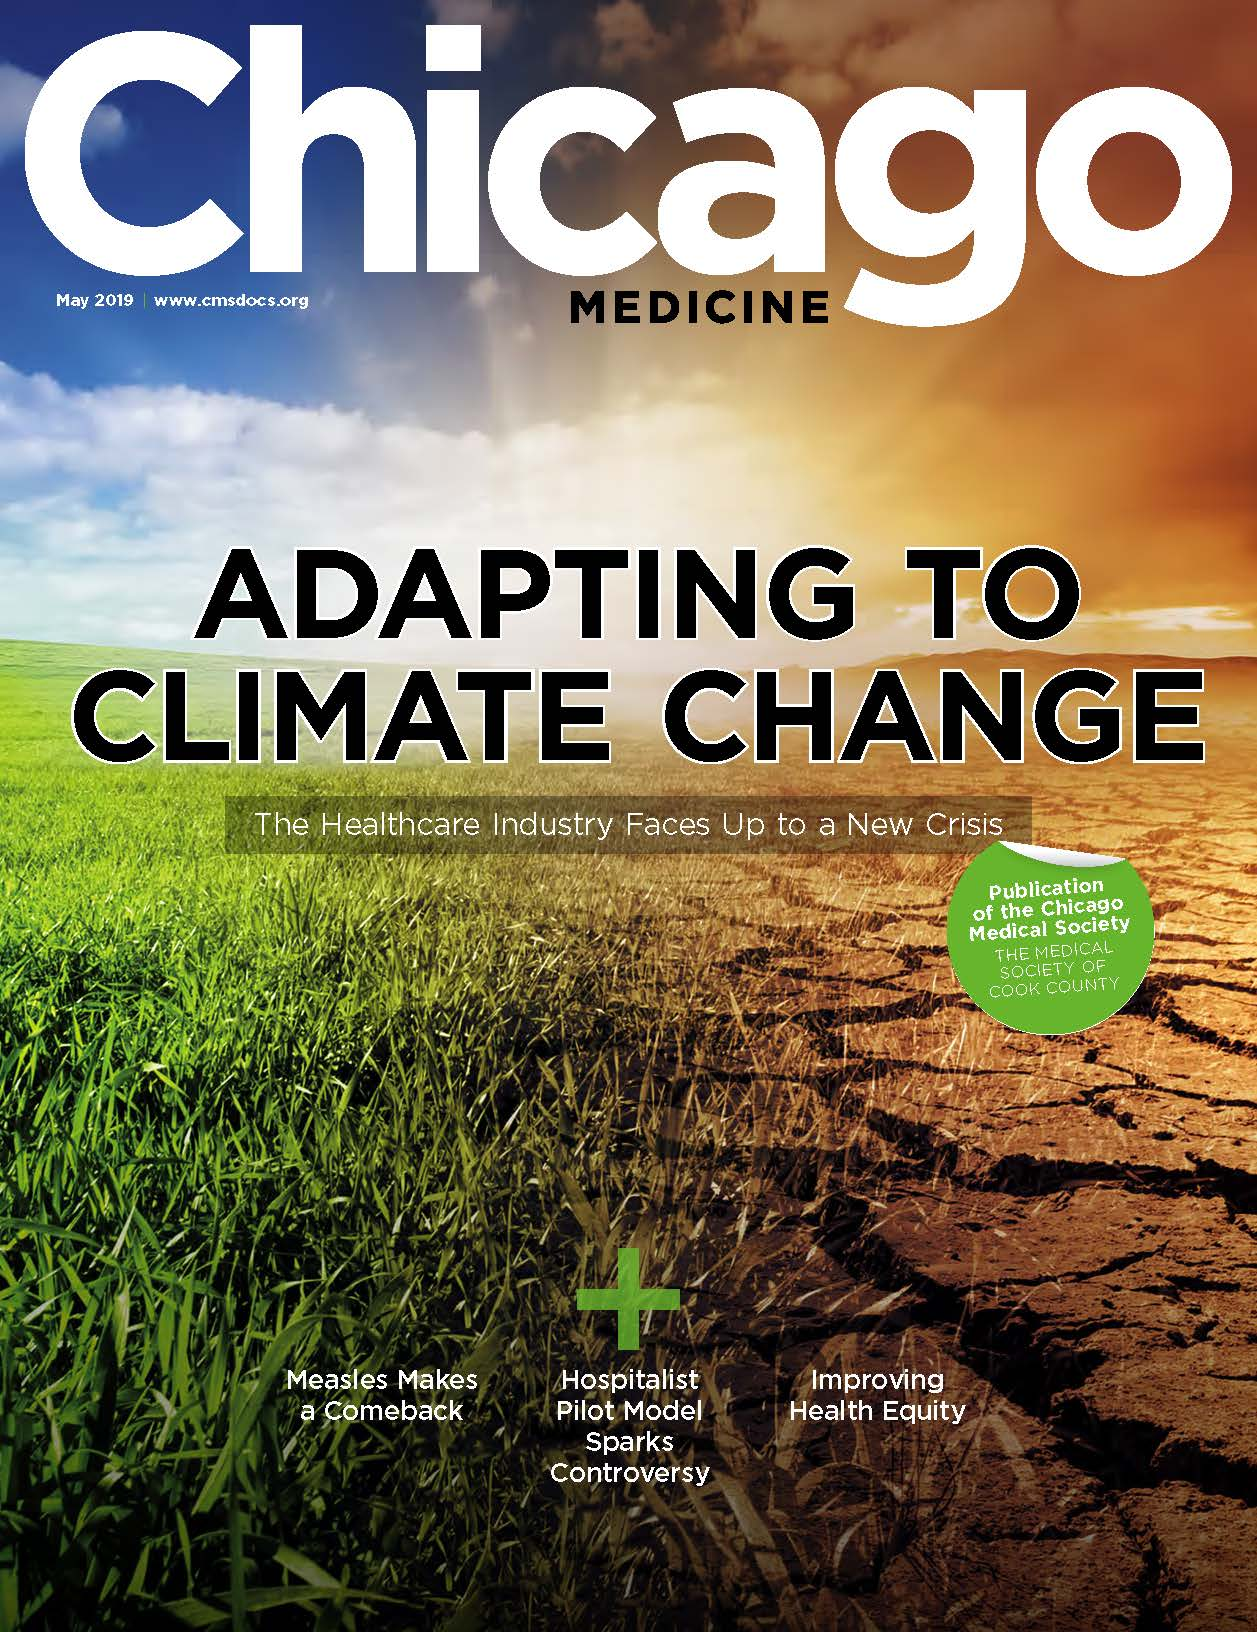 Article: Adapting to Climate Change